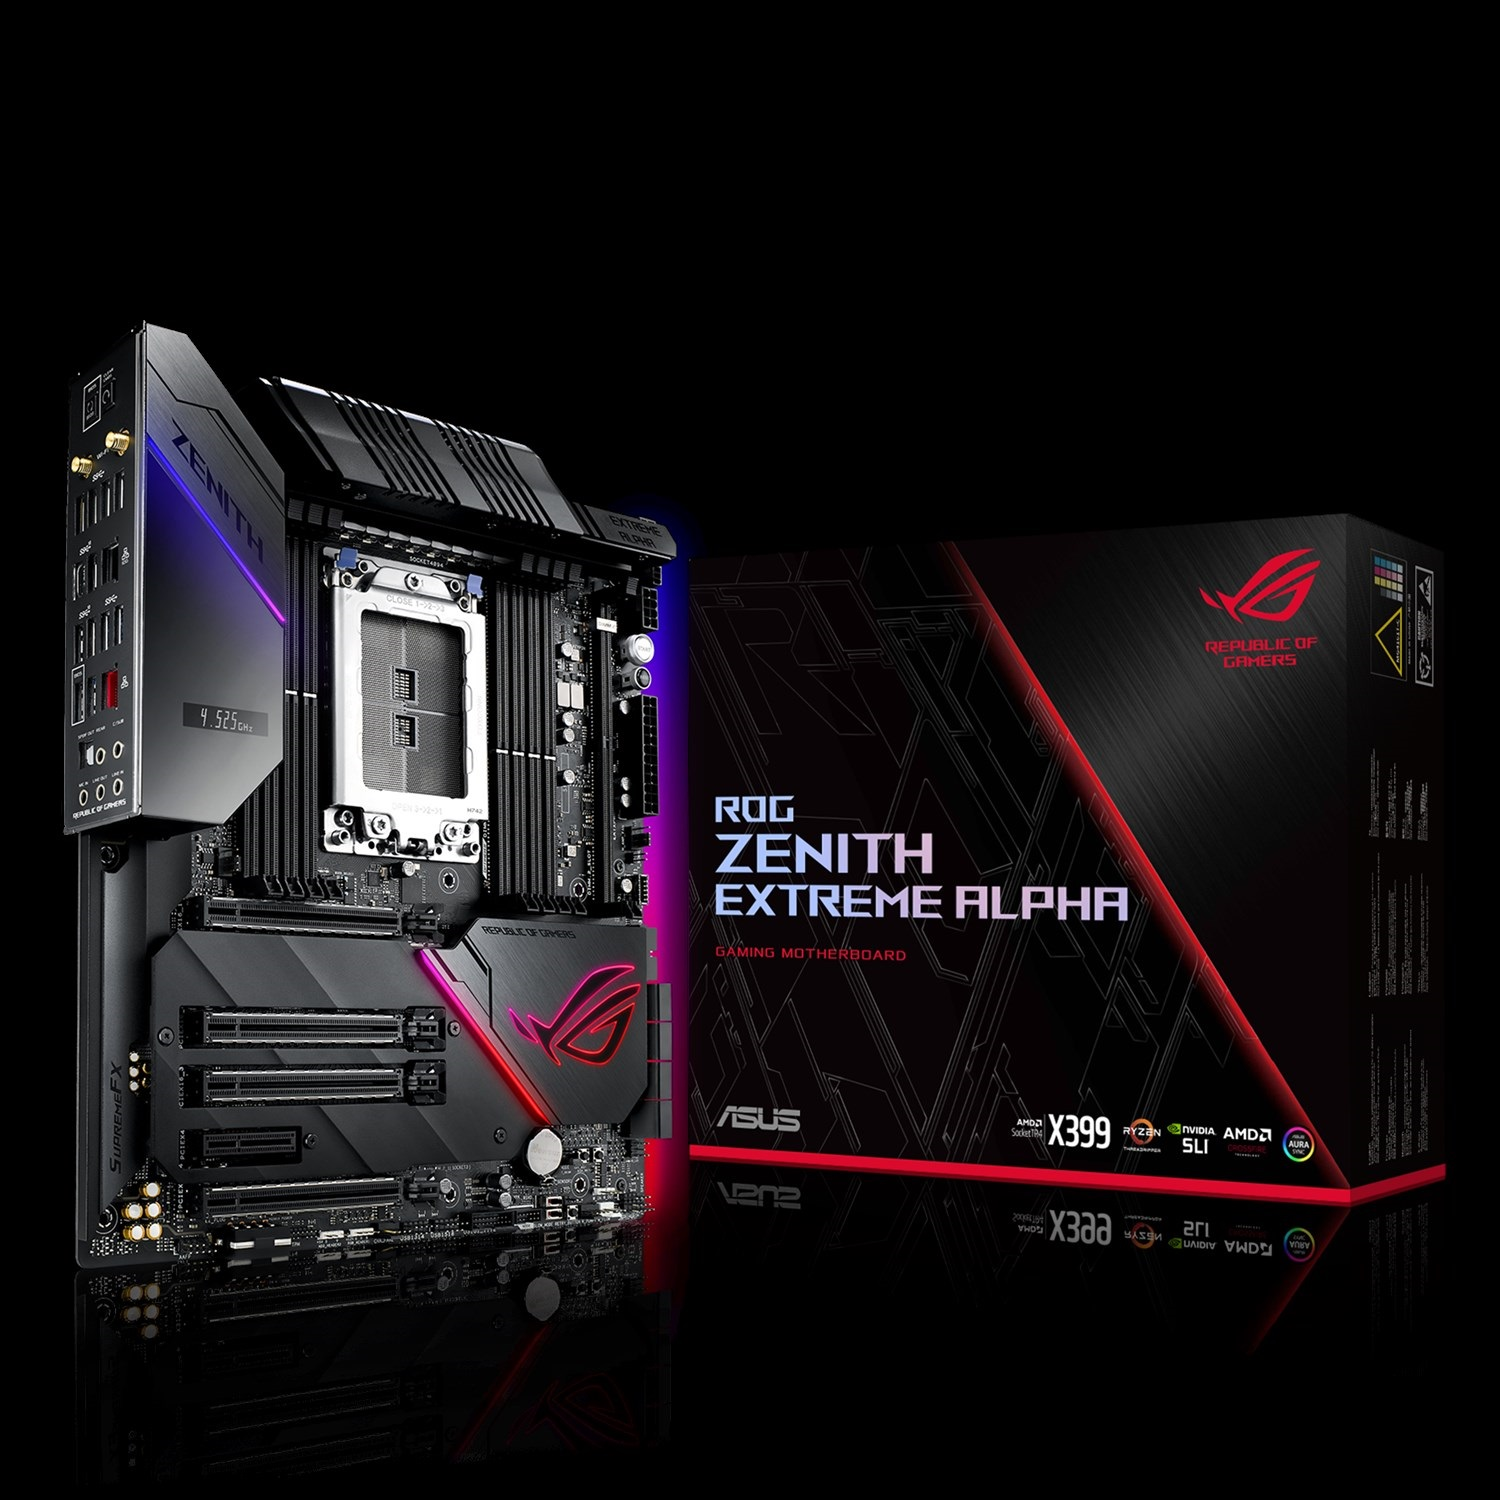 ASUS ROG Zenith Extreme Alpha Motherboard Review With AMD Ryzen